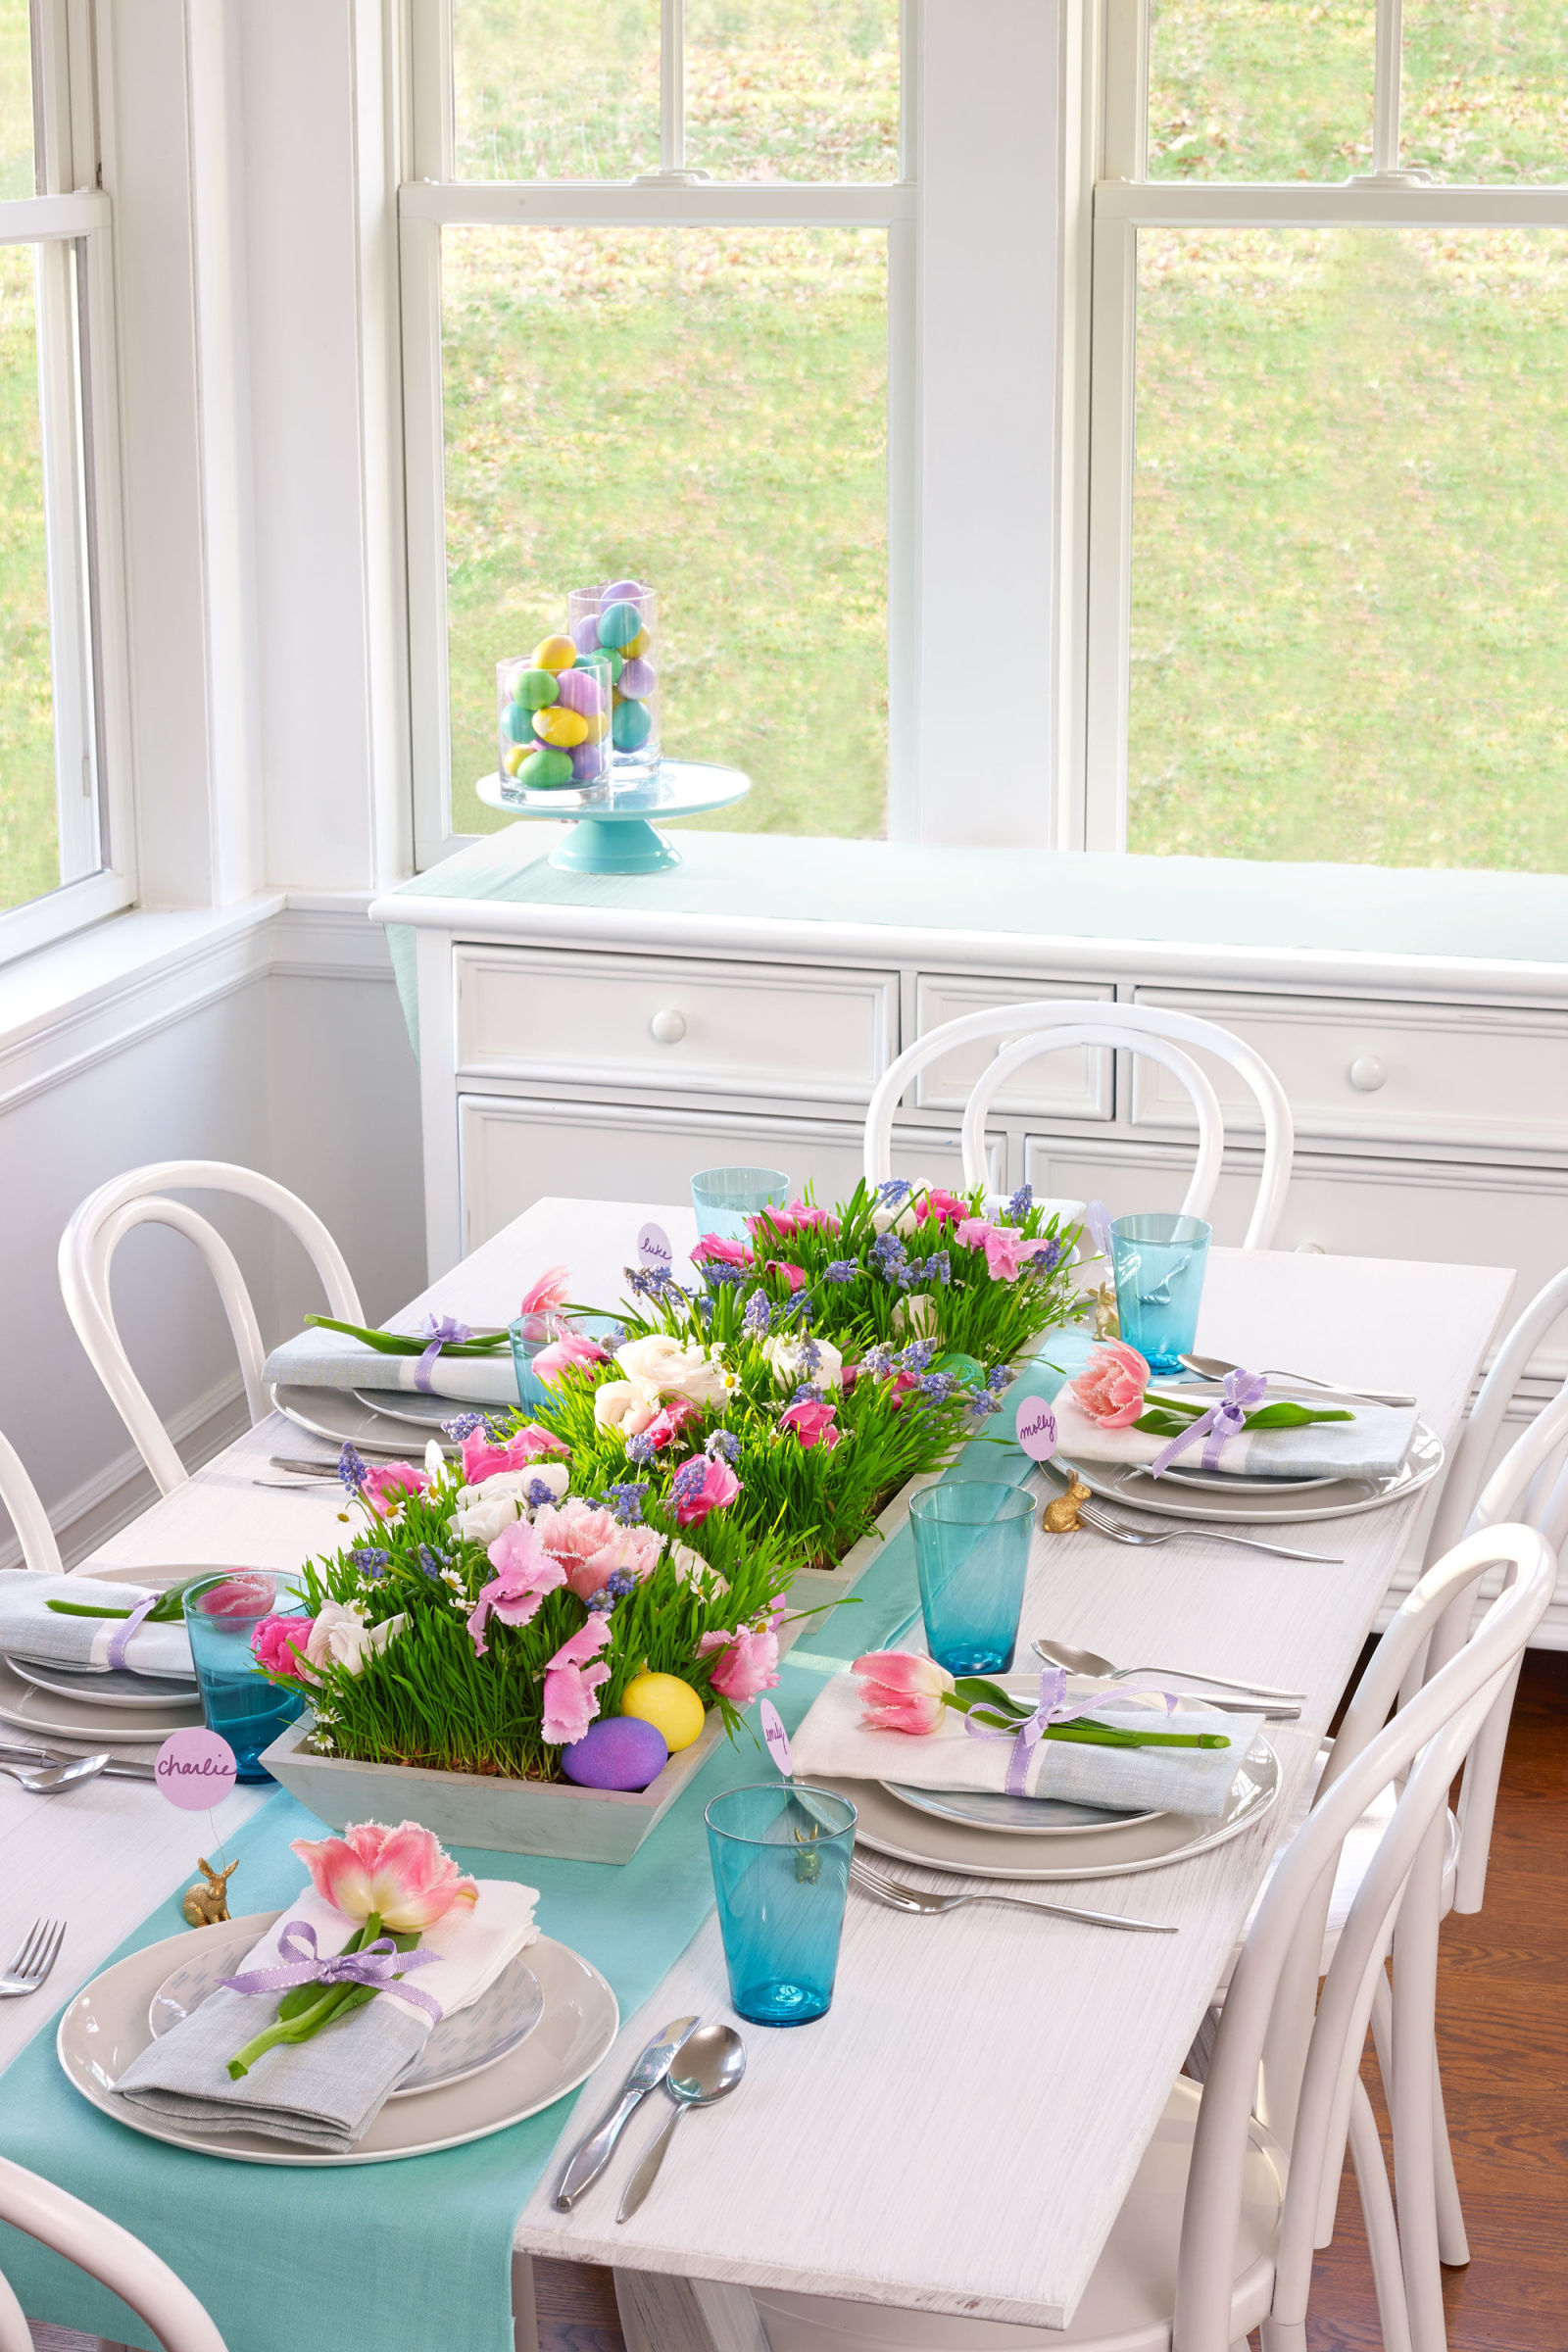 27 Easter Table Decorations Decor Ideas For Brunch